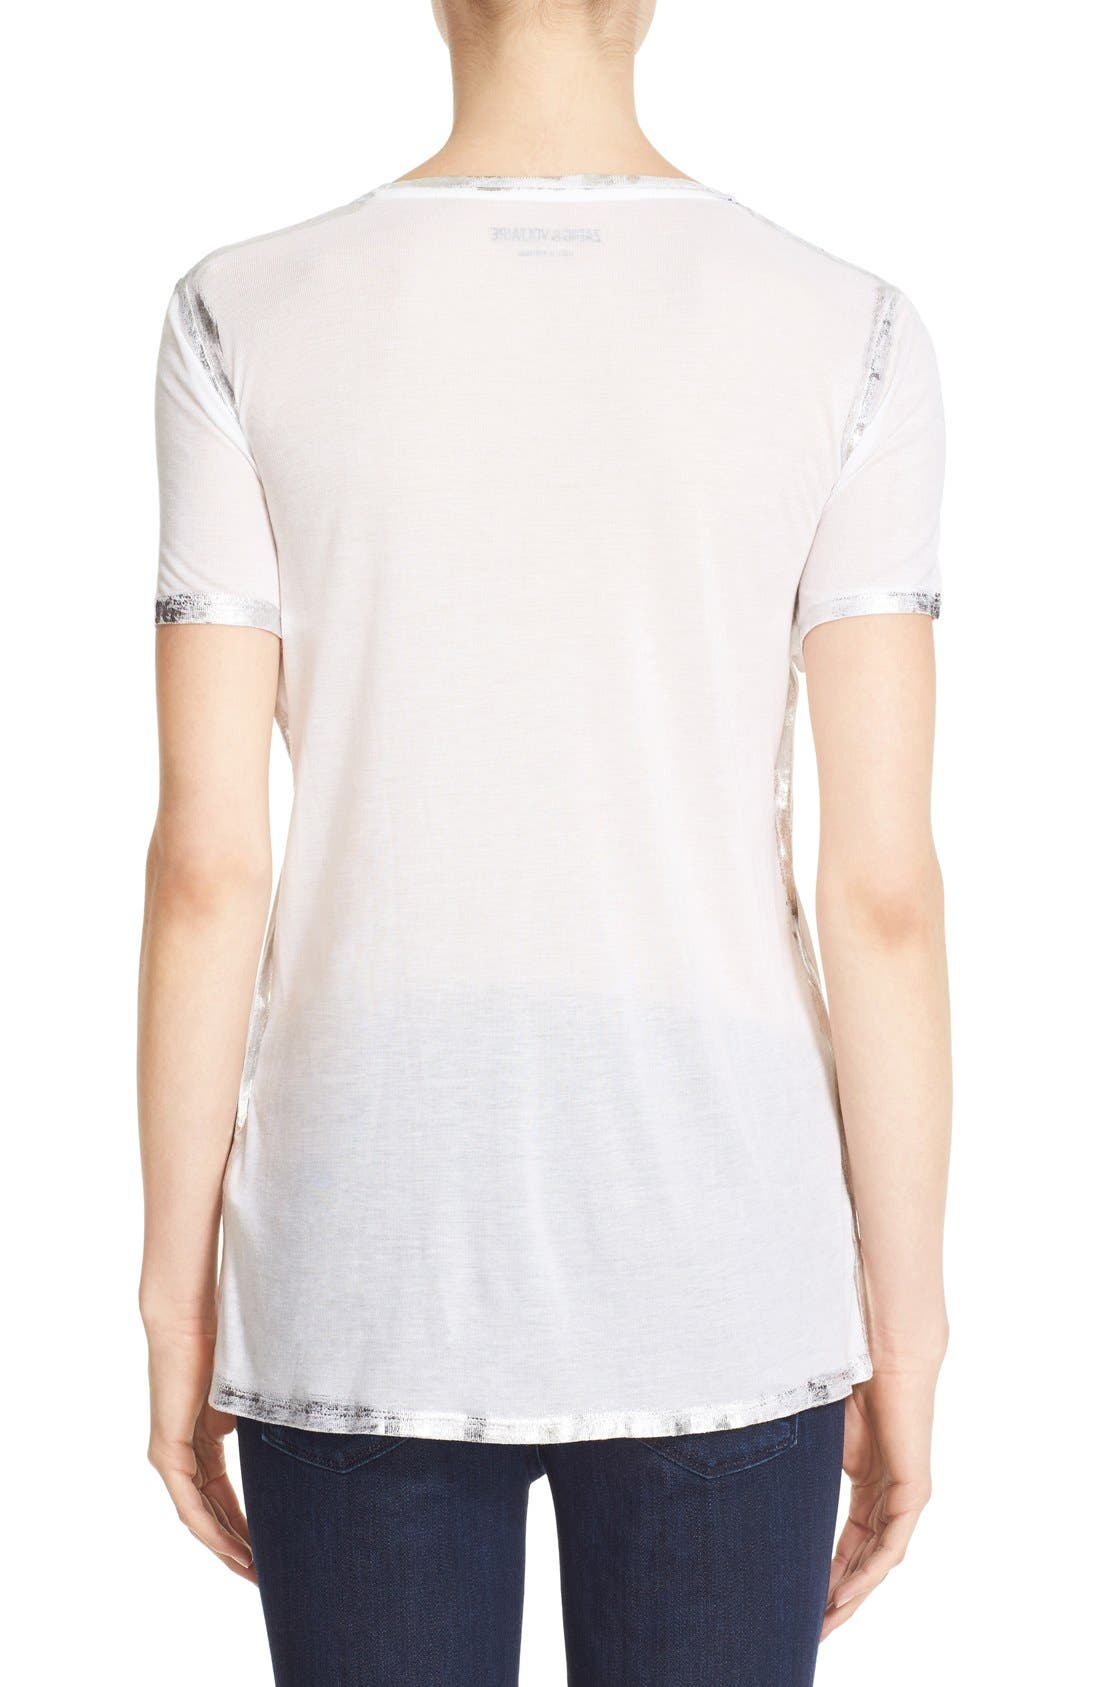 ZADIG & VOLTAIRE,                             'Tino' Foil Accent Tee,                             Alternate thumbnail 4, color,                             116